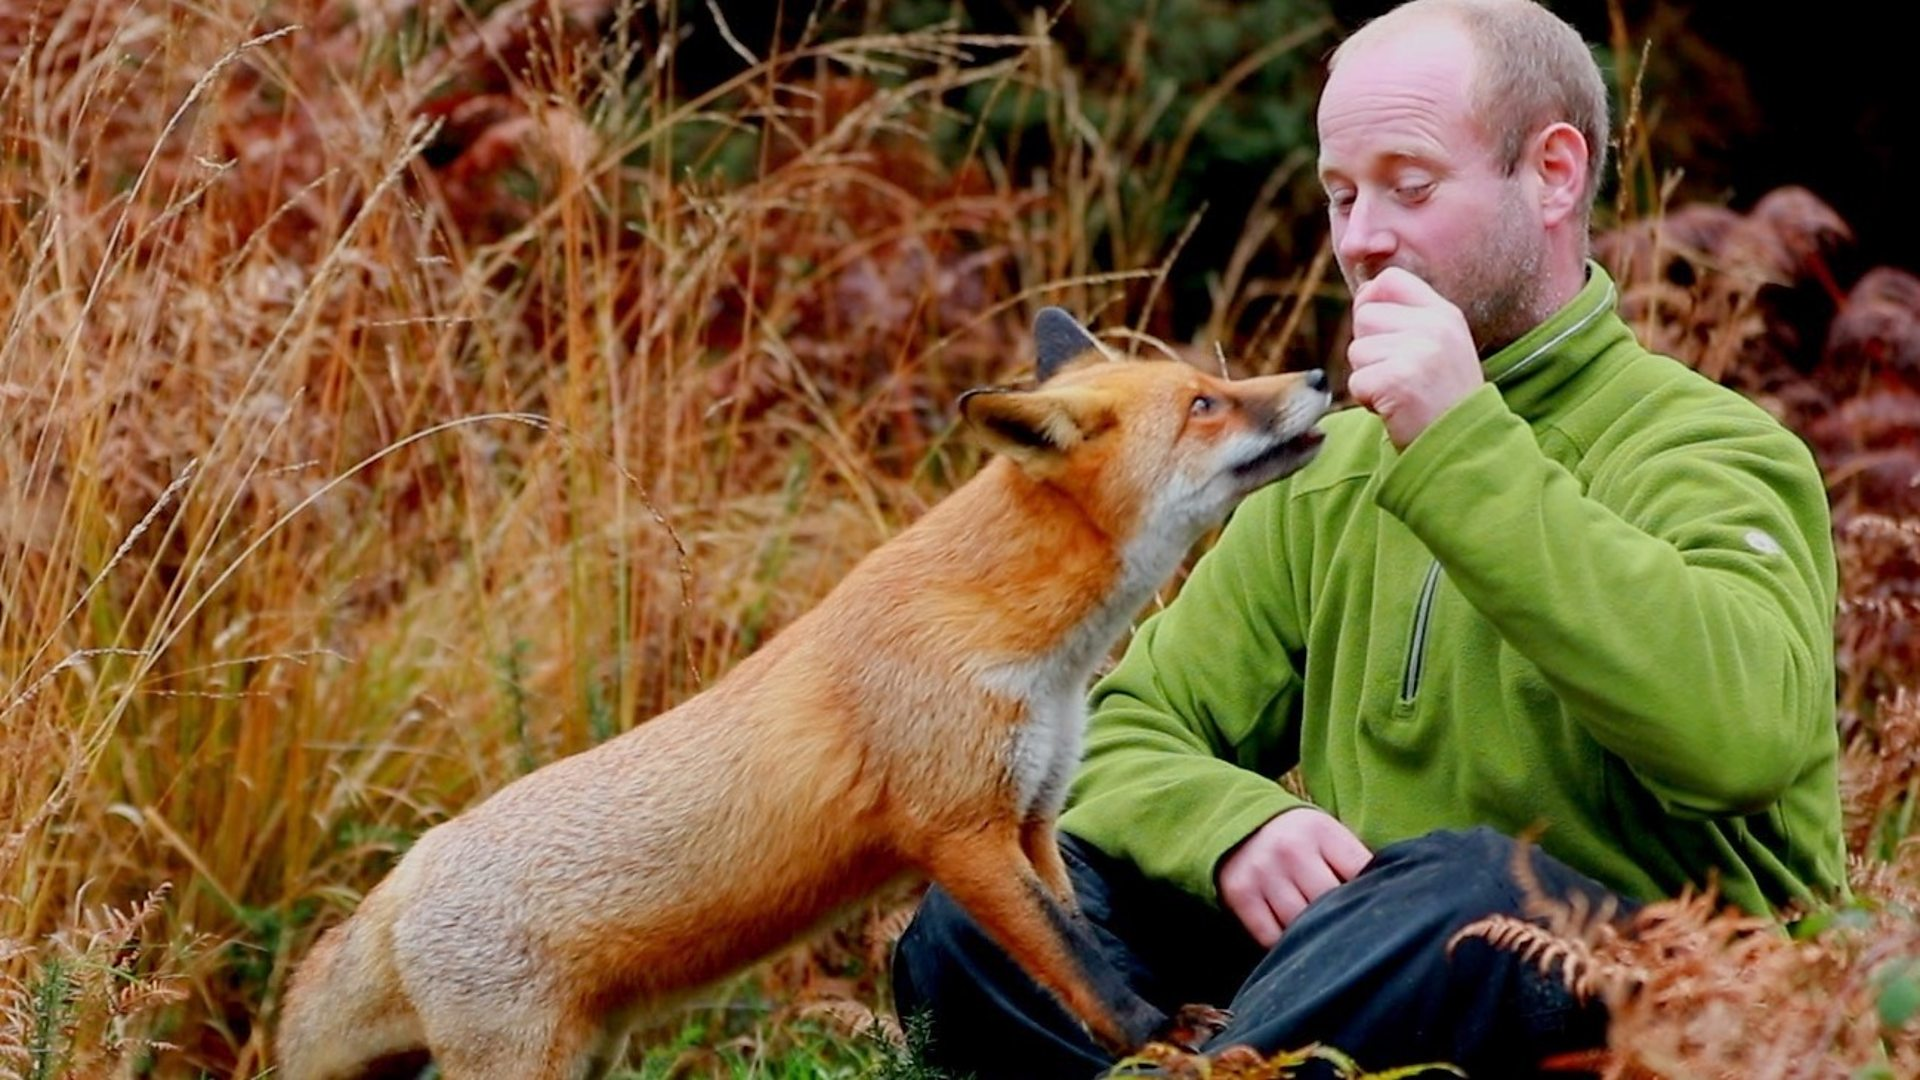 The Fox And The Photographer A Touching Friendship Bbc News